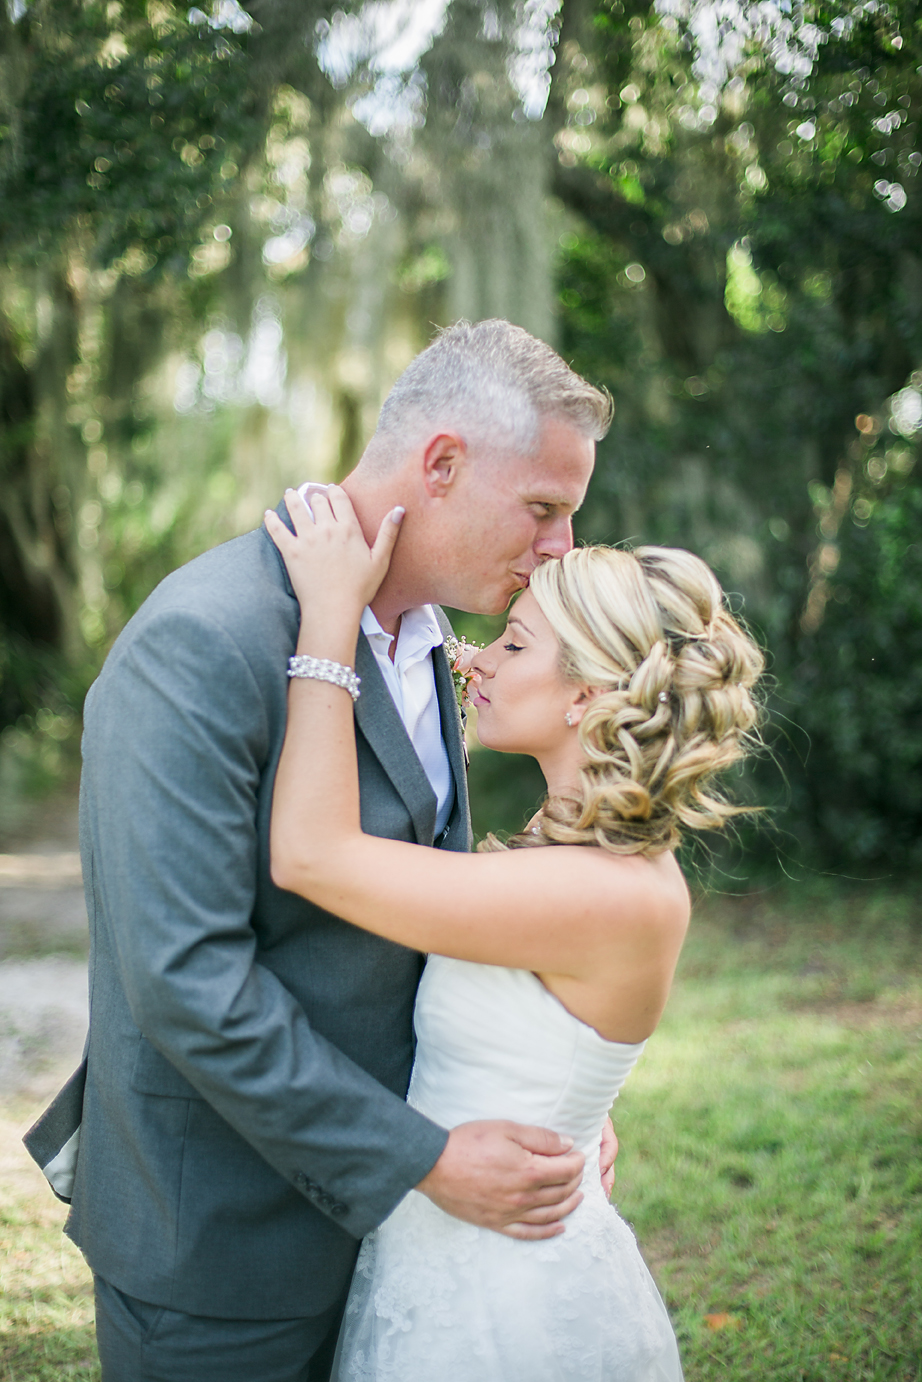 Kaili + Rorlando - Tampa Photography - Sarasota Wedding Photography - Emily & Co. Photography - Beach Wedding Photography - Formal Photos (152).jpg